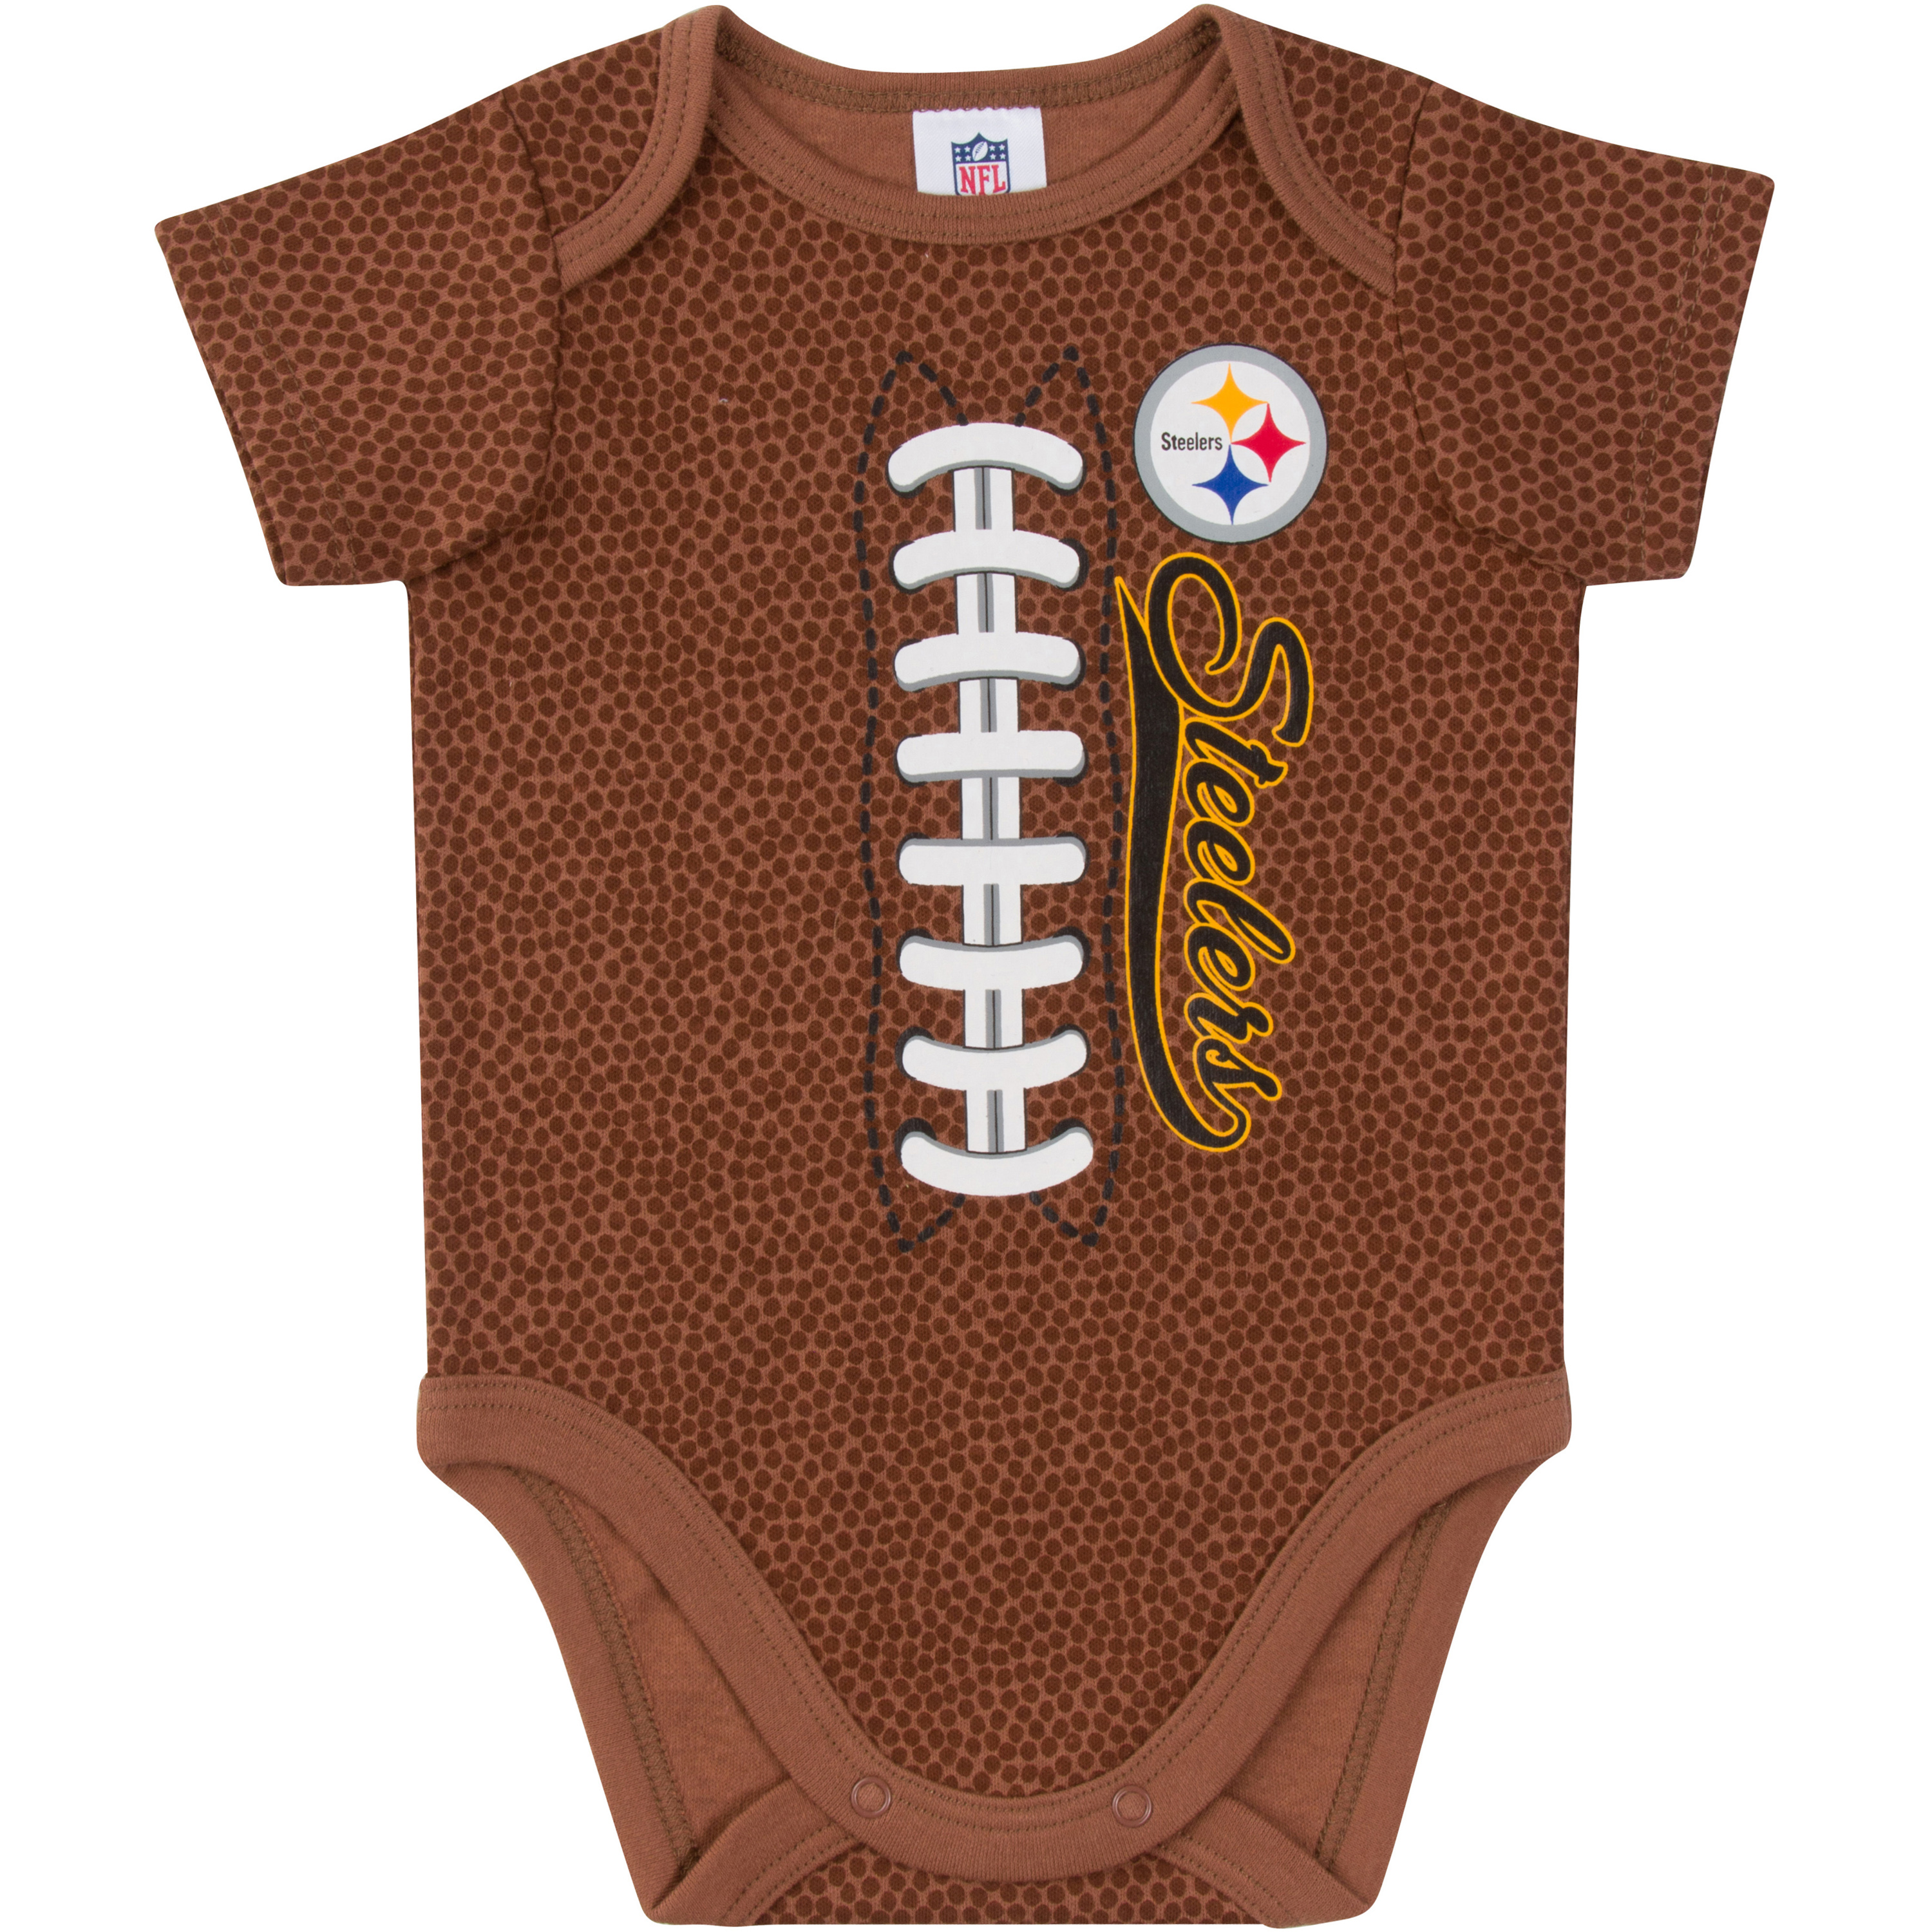 steelers-nfl-football-baby-bodysuit-official